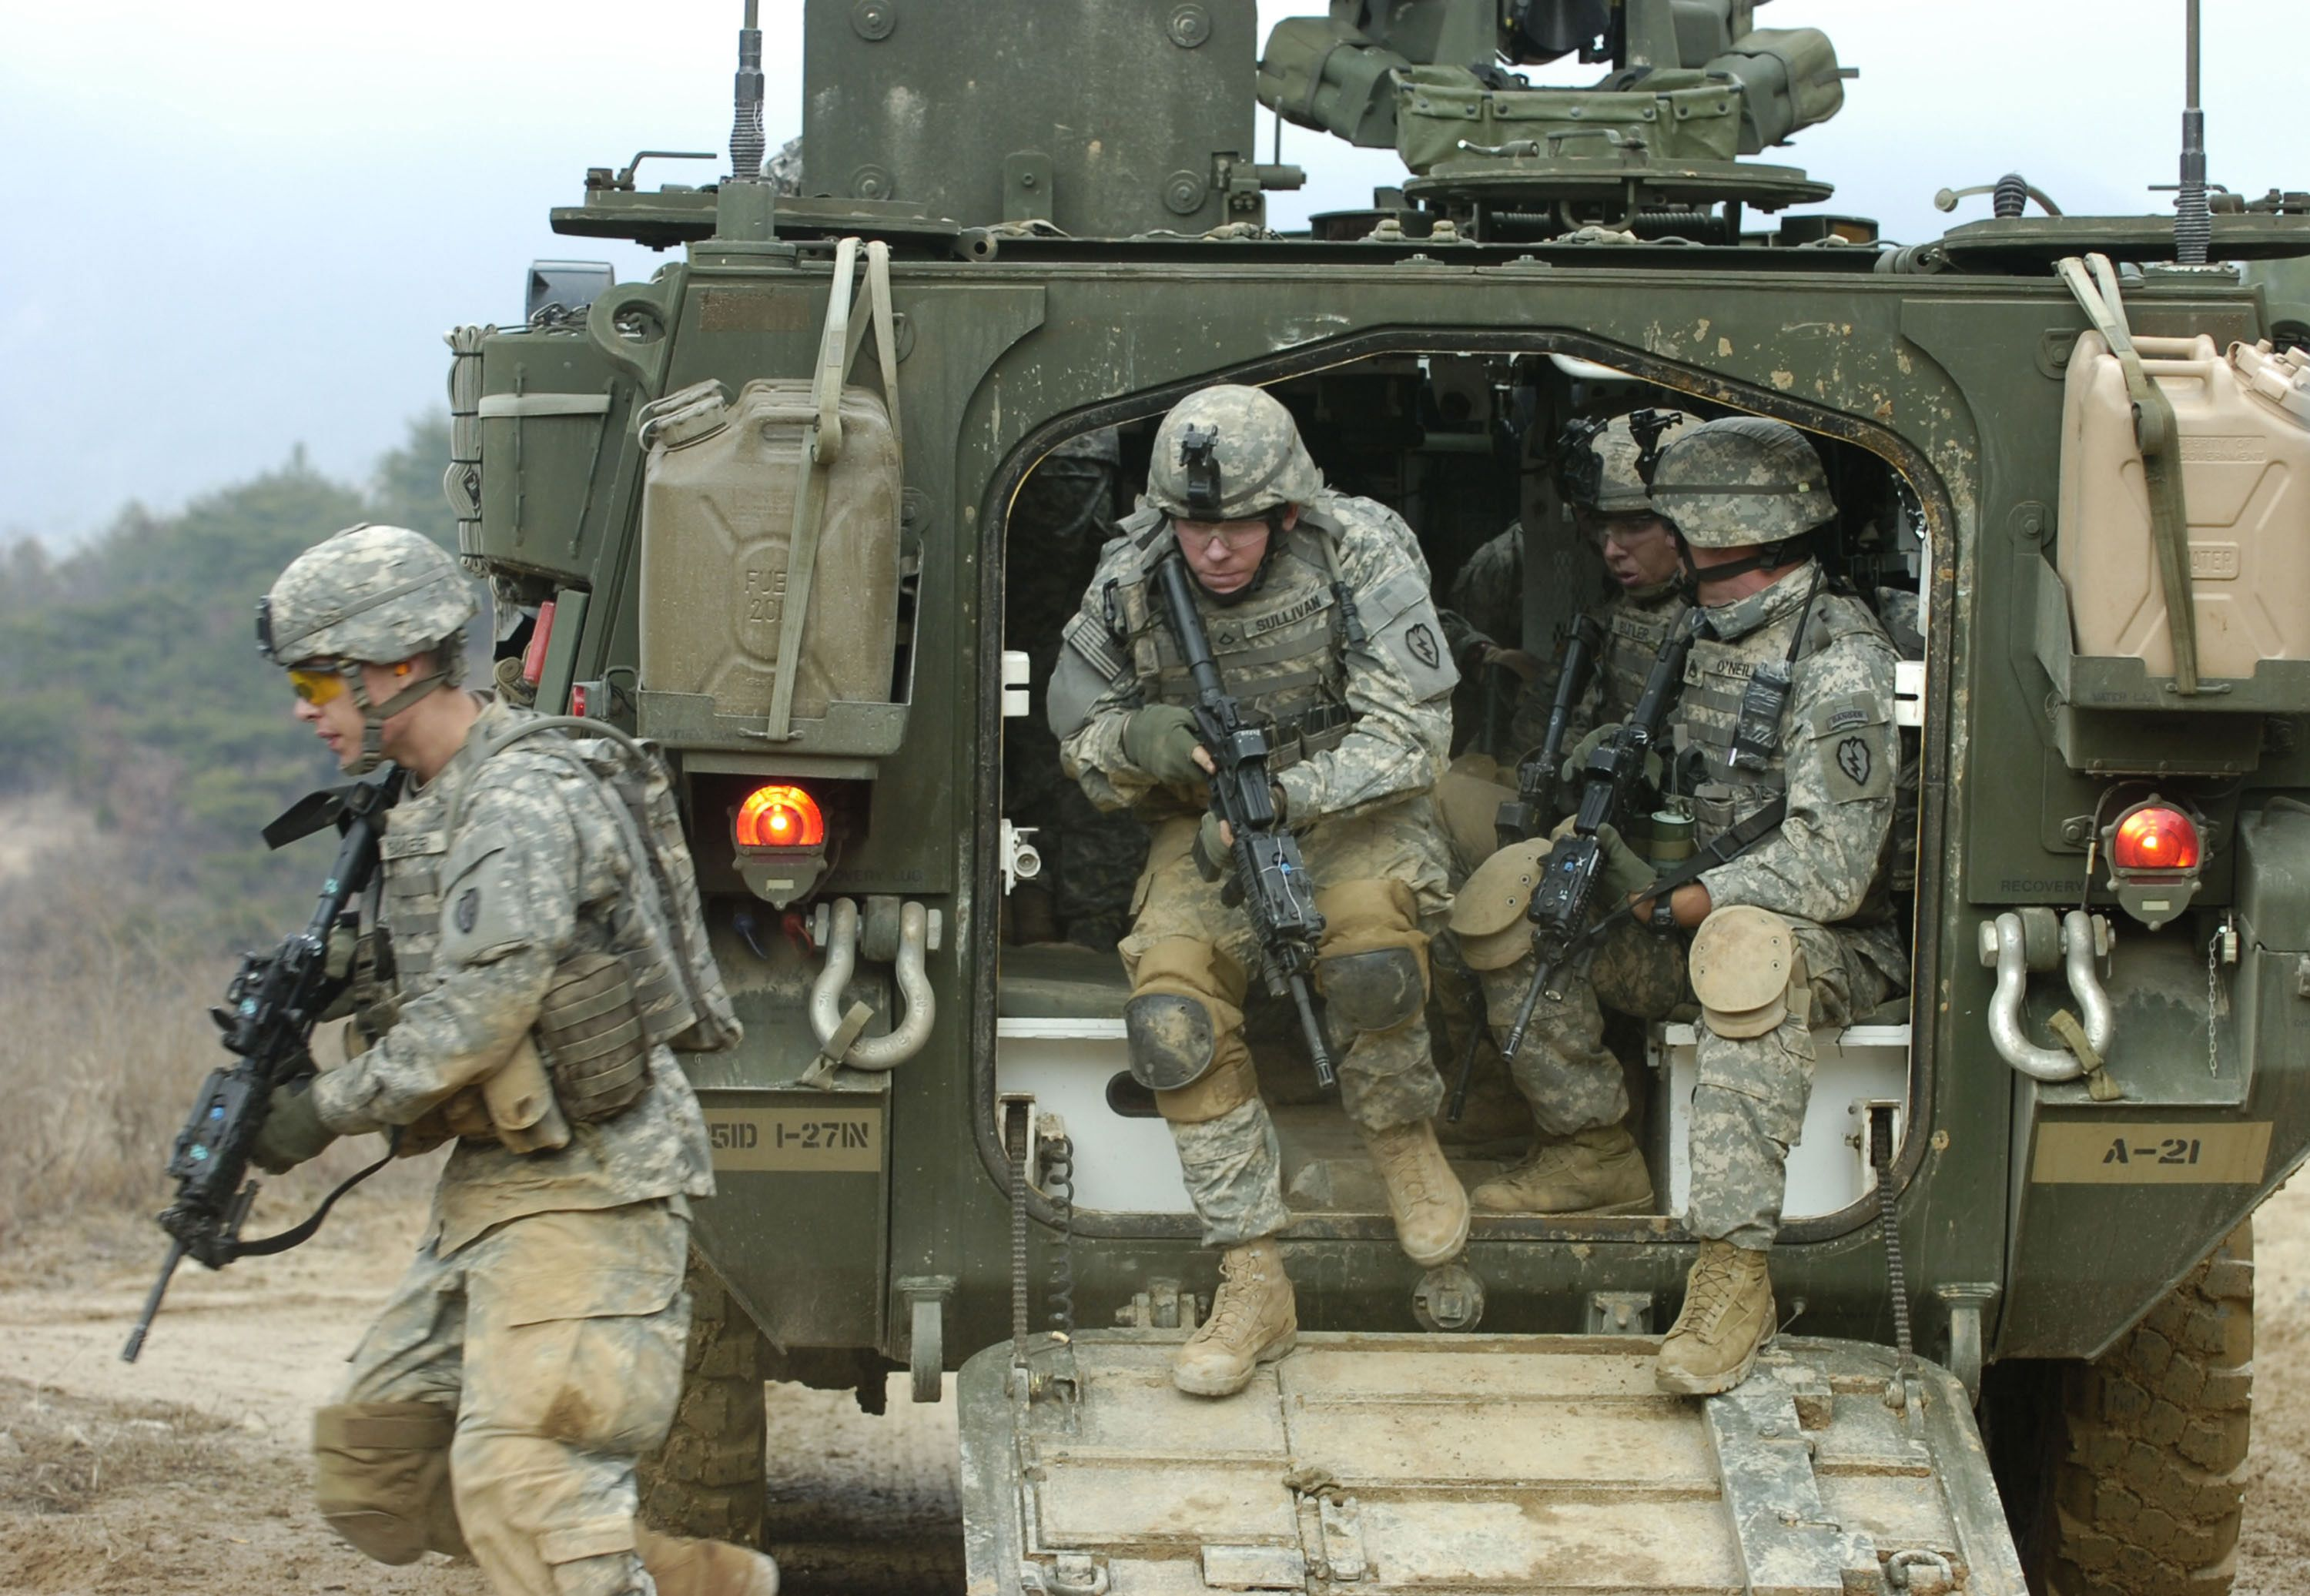 U S Army Soldiers From Alpha Company 1st Battalion 27th Infantry Regiment 2nd Stryker Brigade Combat Team Exit Their M1126 Stryker In Us Army Army Military